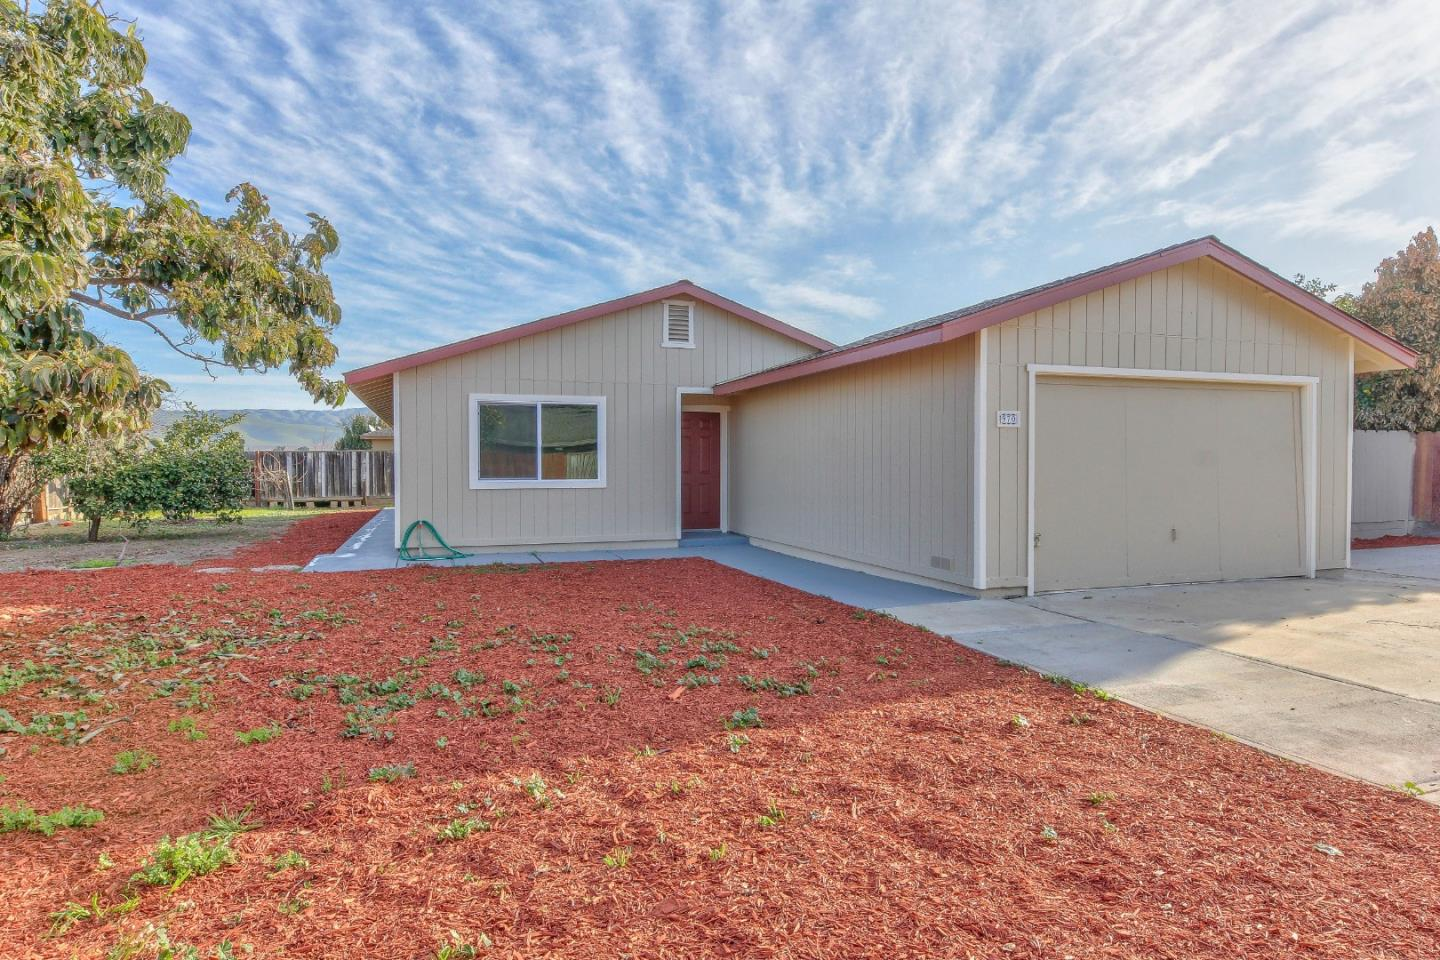 Detail Gallery Image 1 of 30 For 970 Elko St, Gonzales, CA 93926 - 4 Beds | 2 Baths